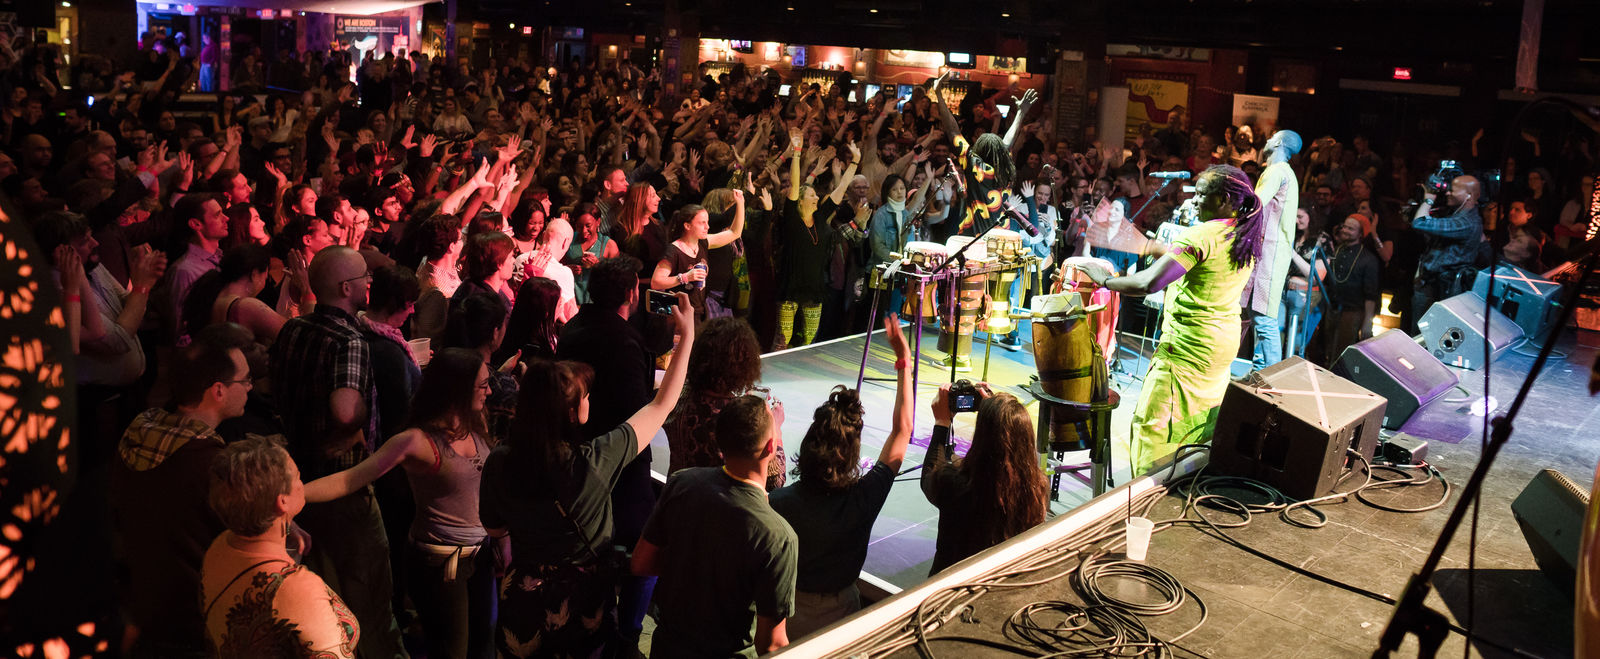 People dance at a concert.